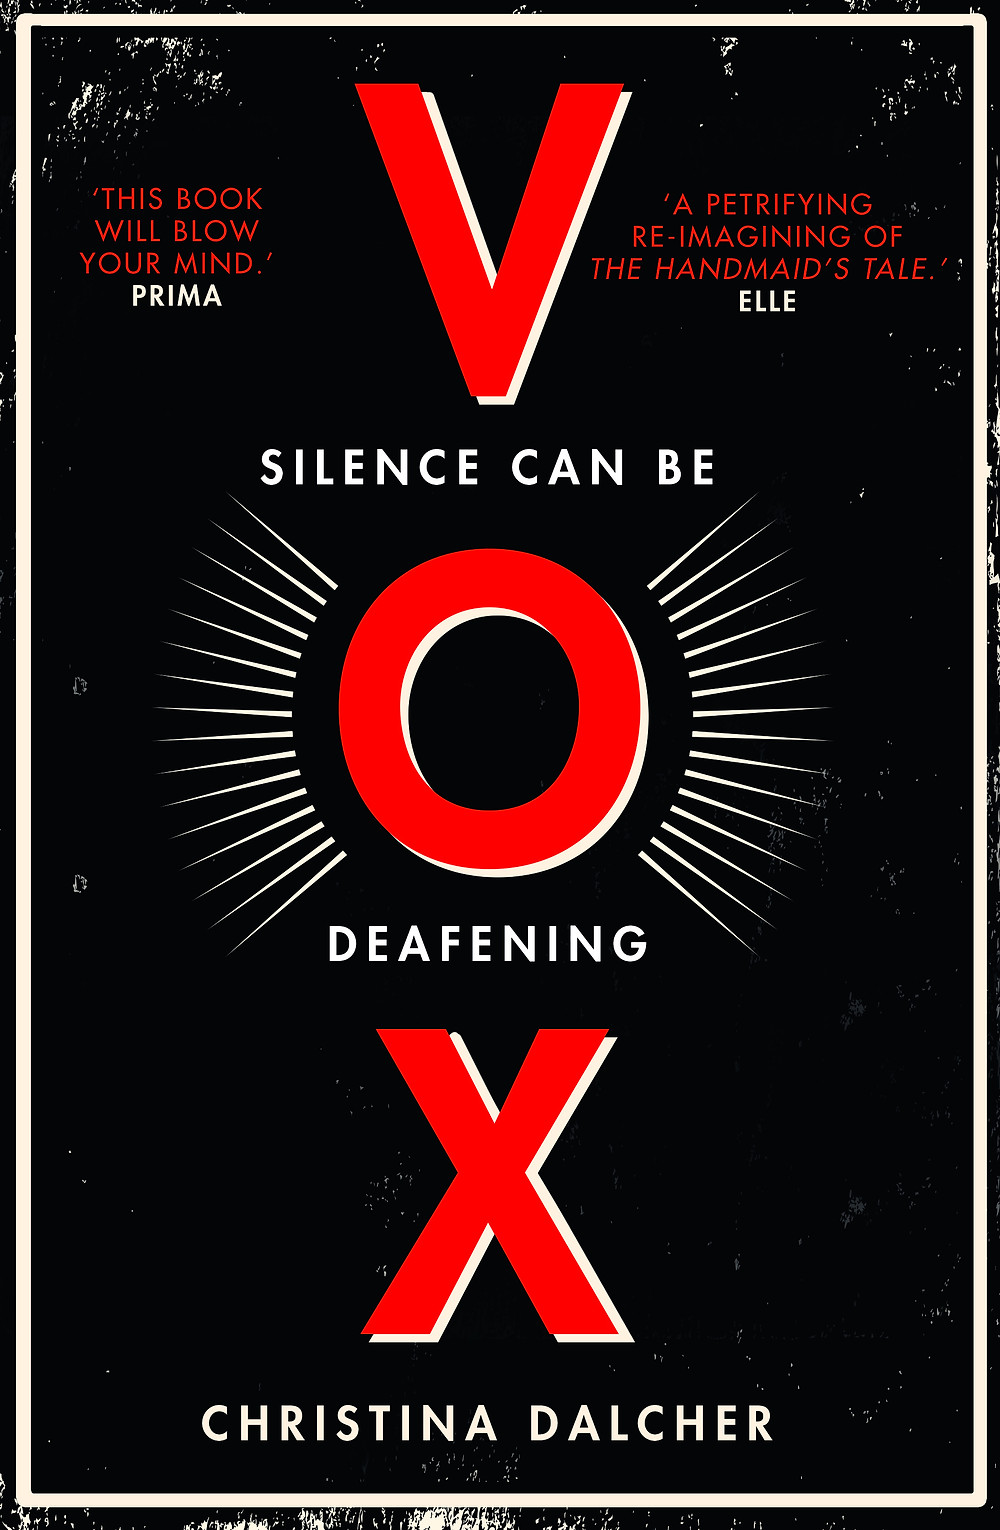 christina dalcher, vox, official cover, final cover, book, book cover